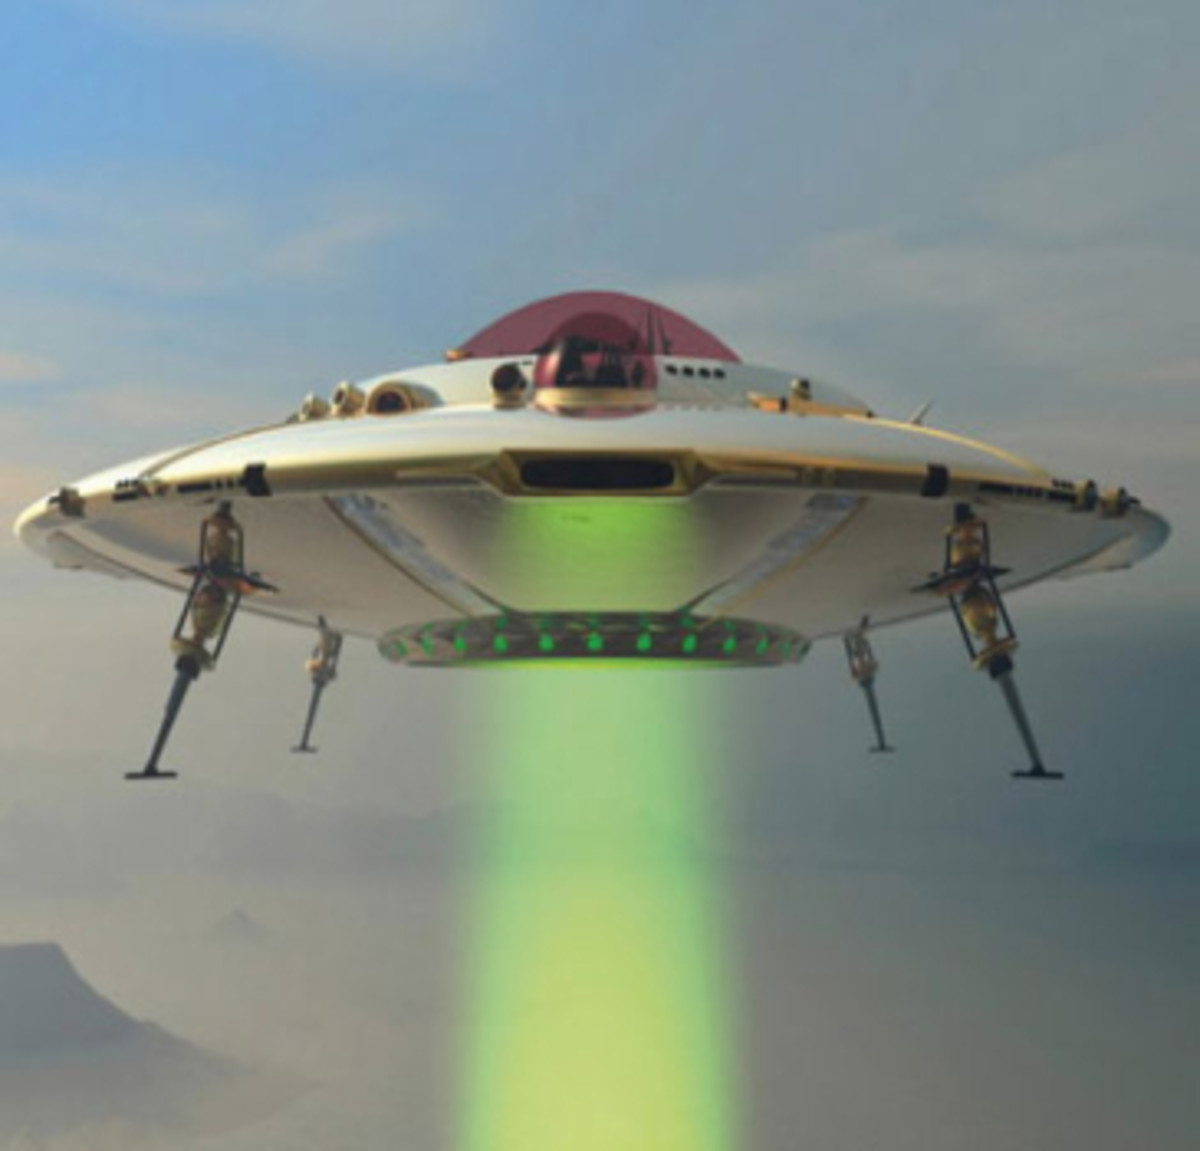 If you believe in UFO, there was an MLM for you...